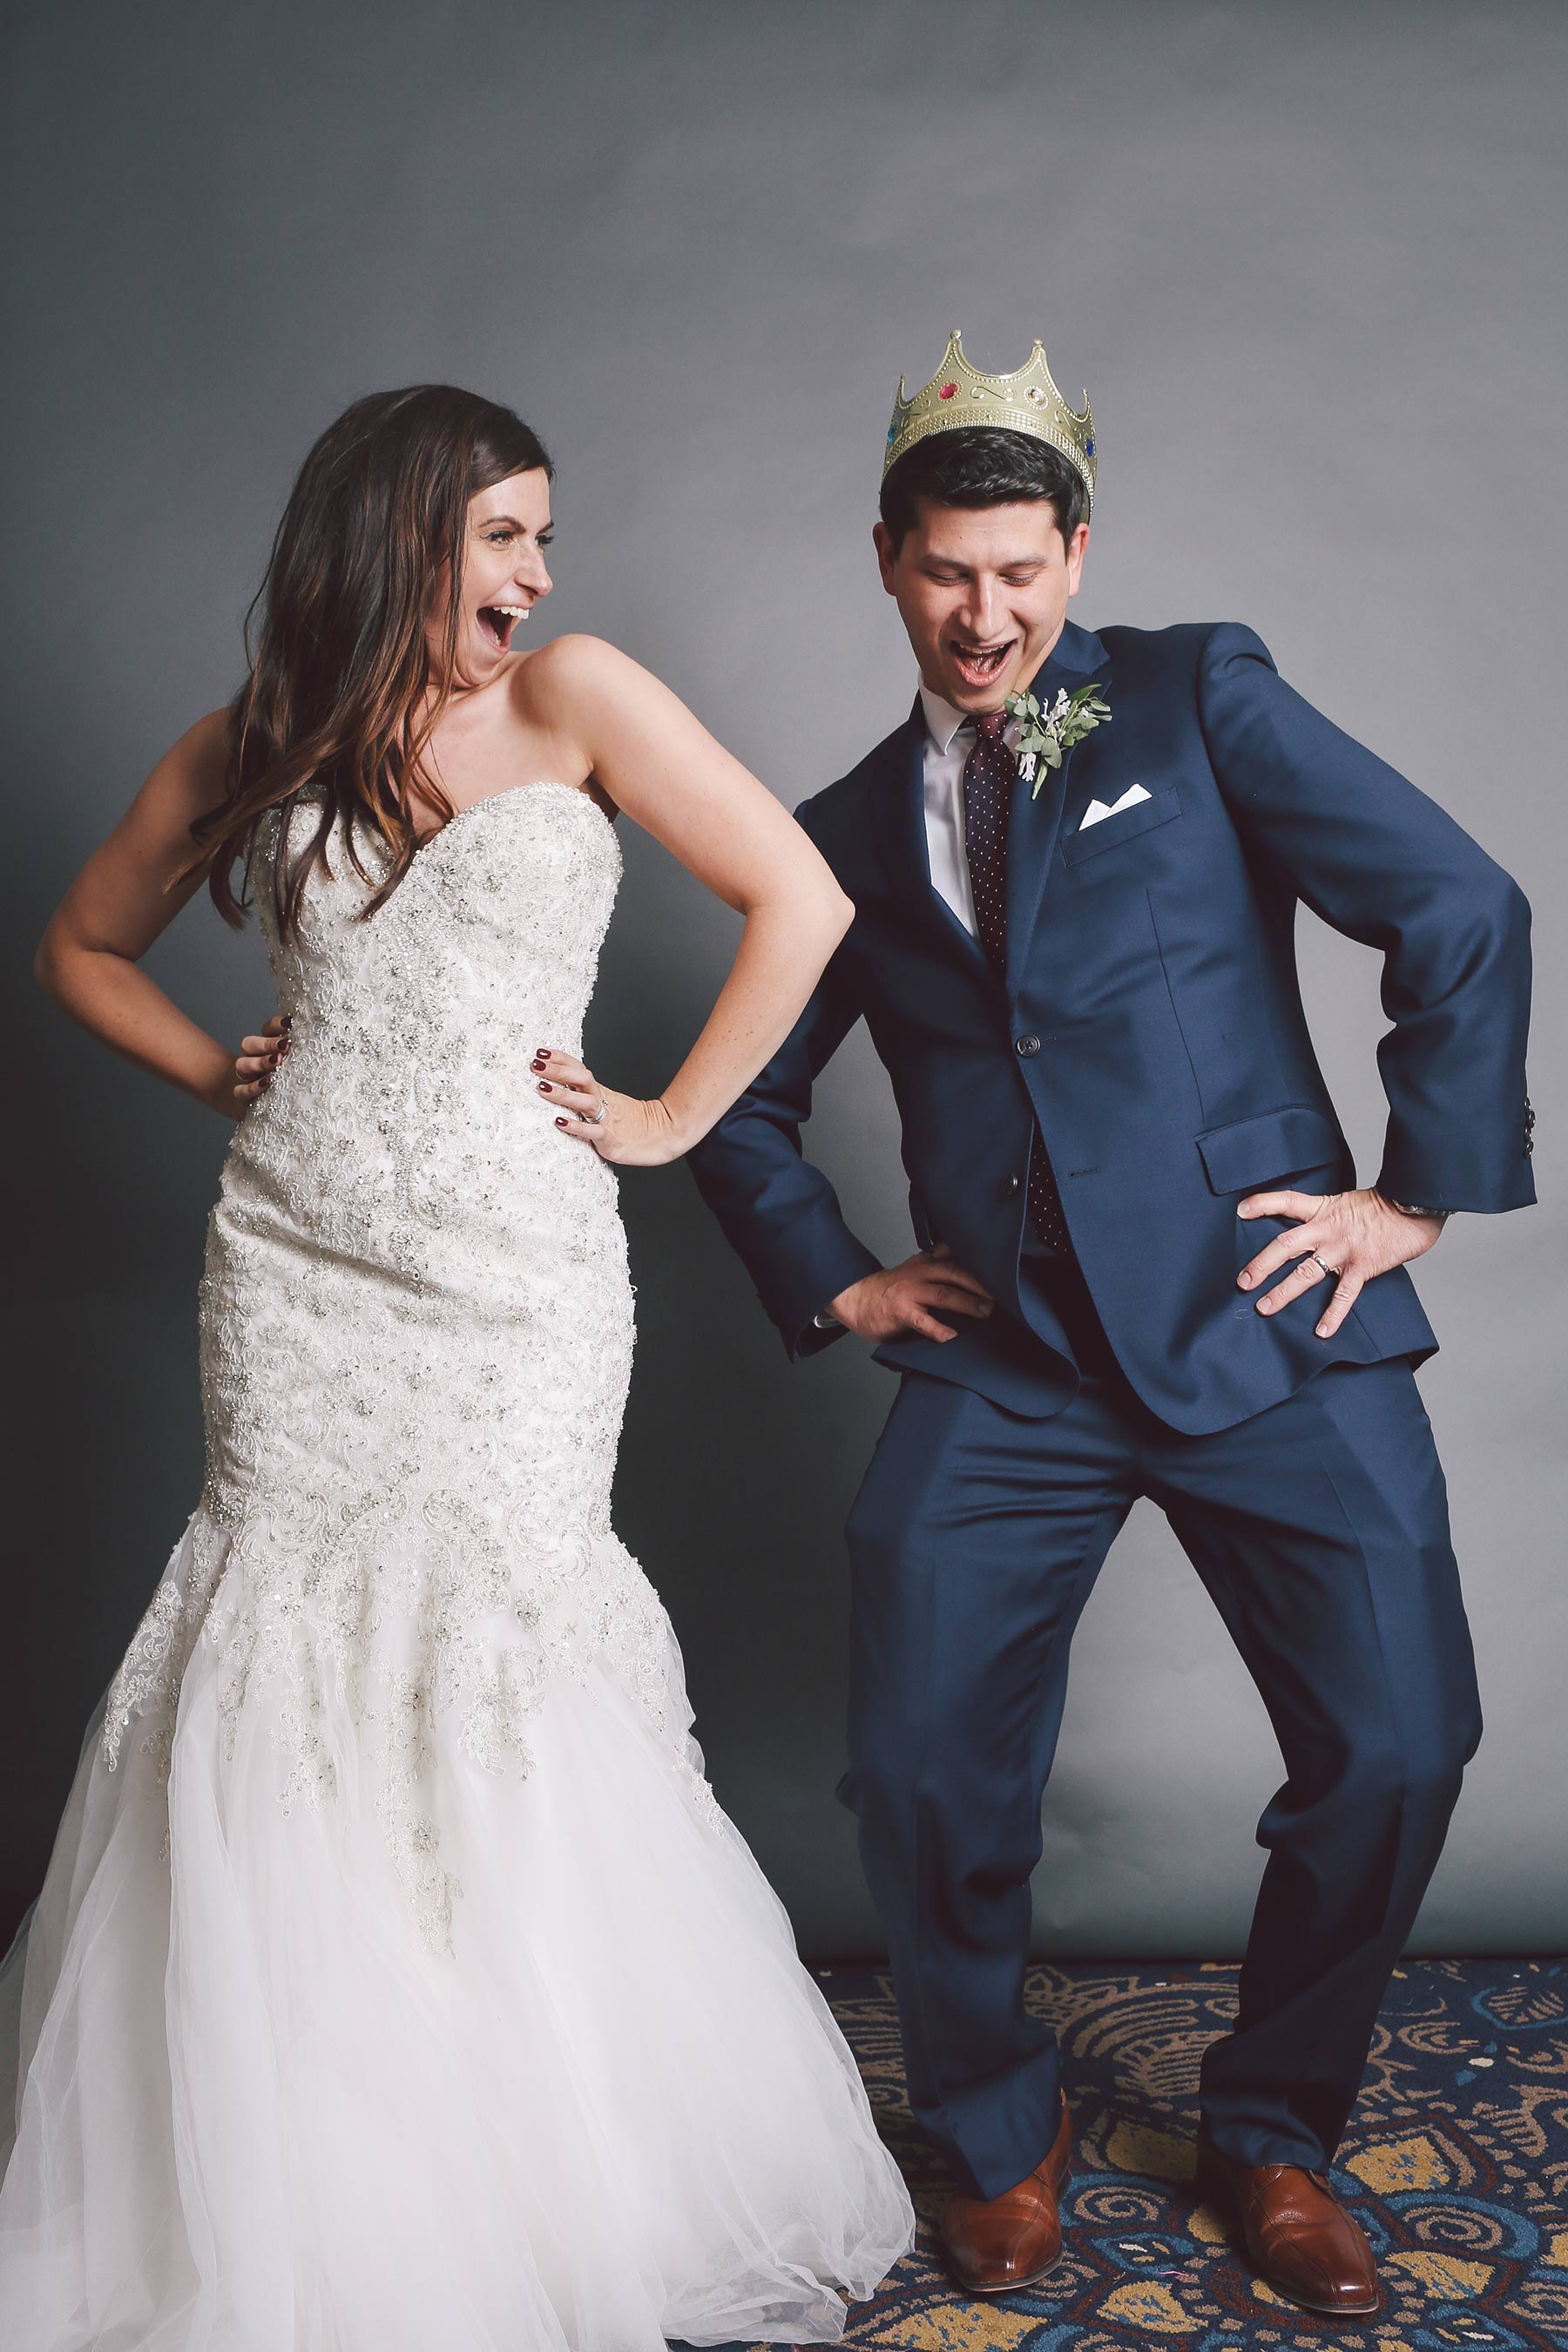 Vick-Photography-Crazy-Cam-Photo-Booth-Bride-Groom.jpg